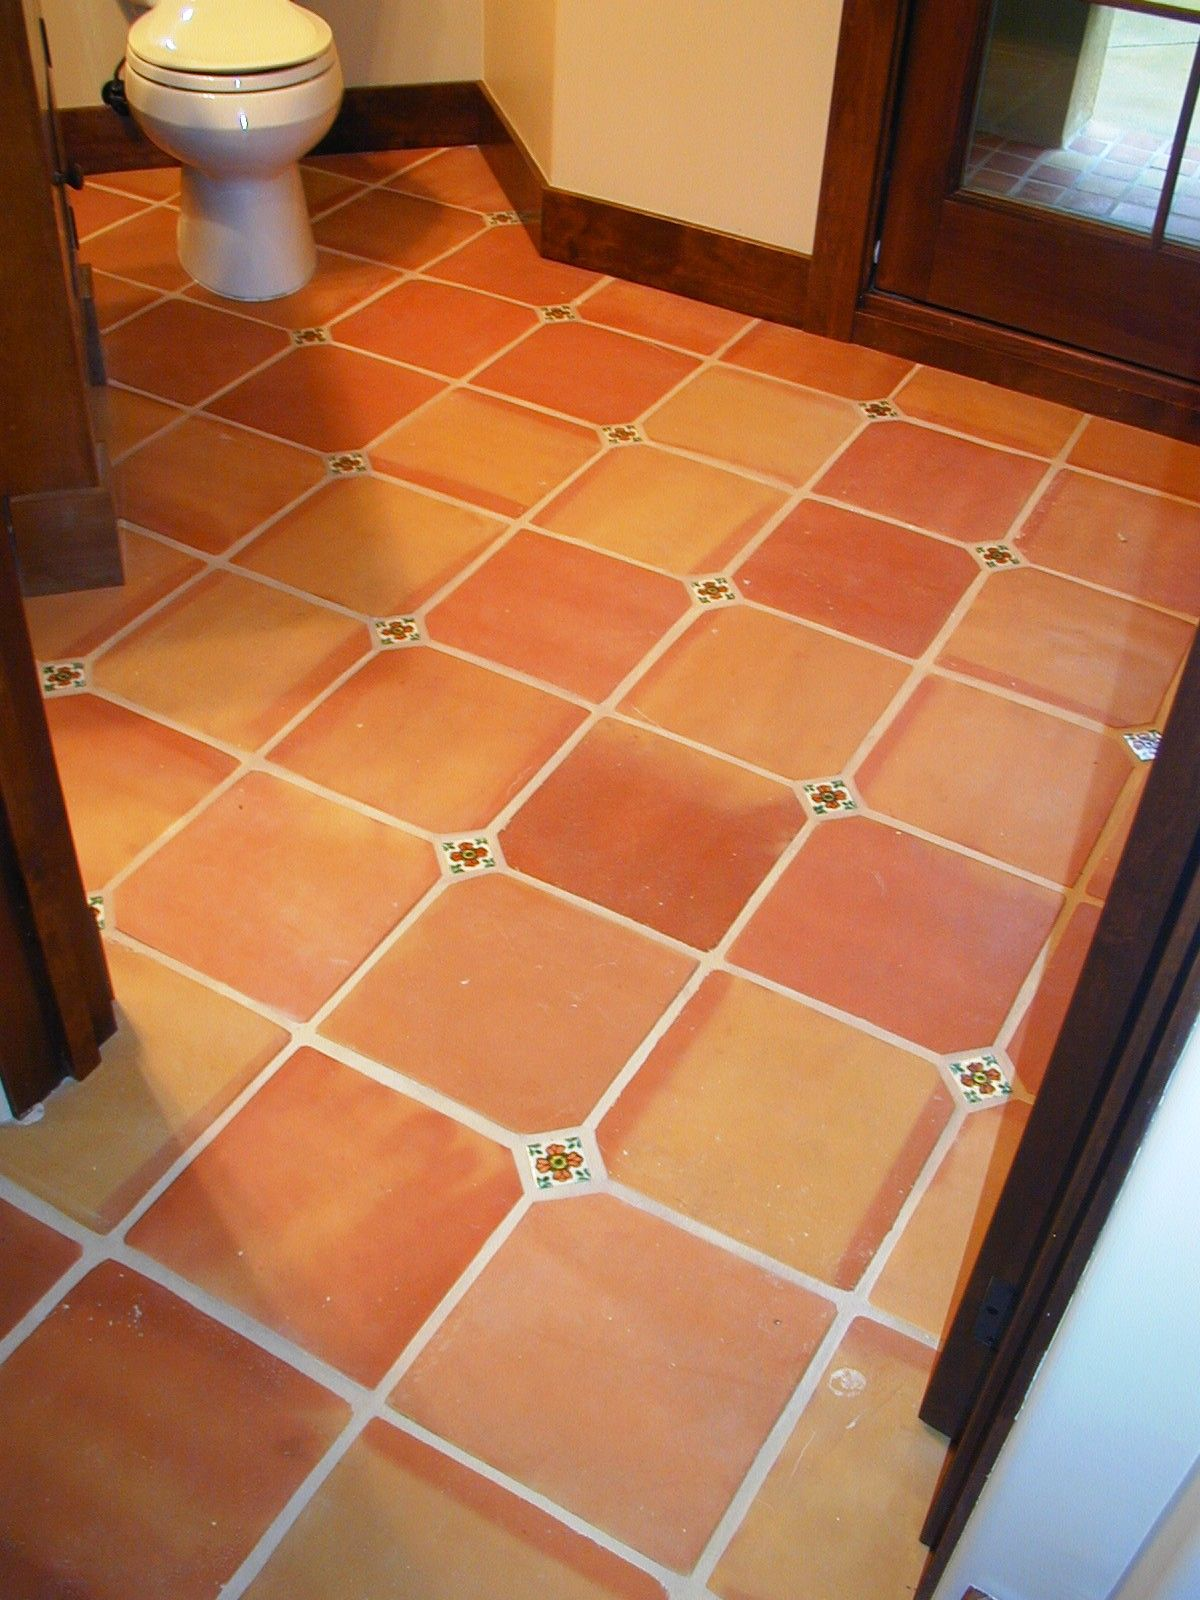 terracotta floor tile - next to the door and under the wood stove